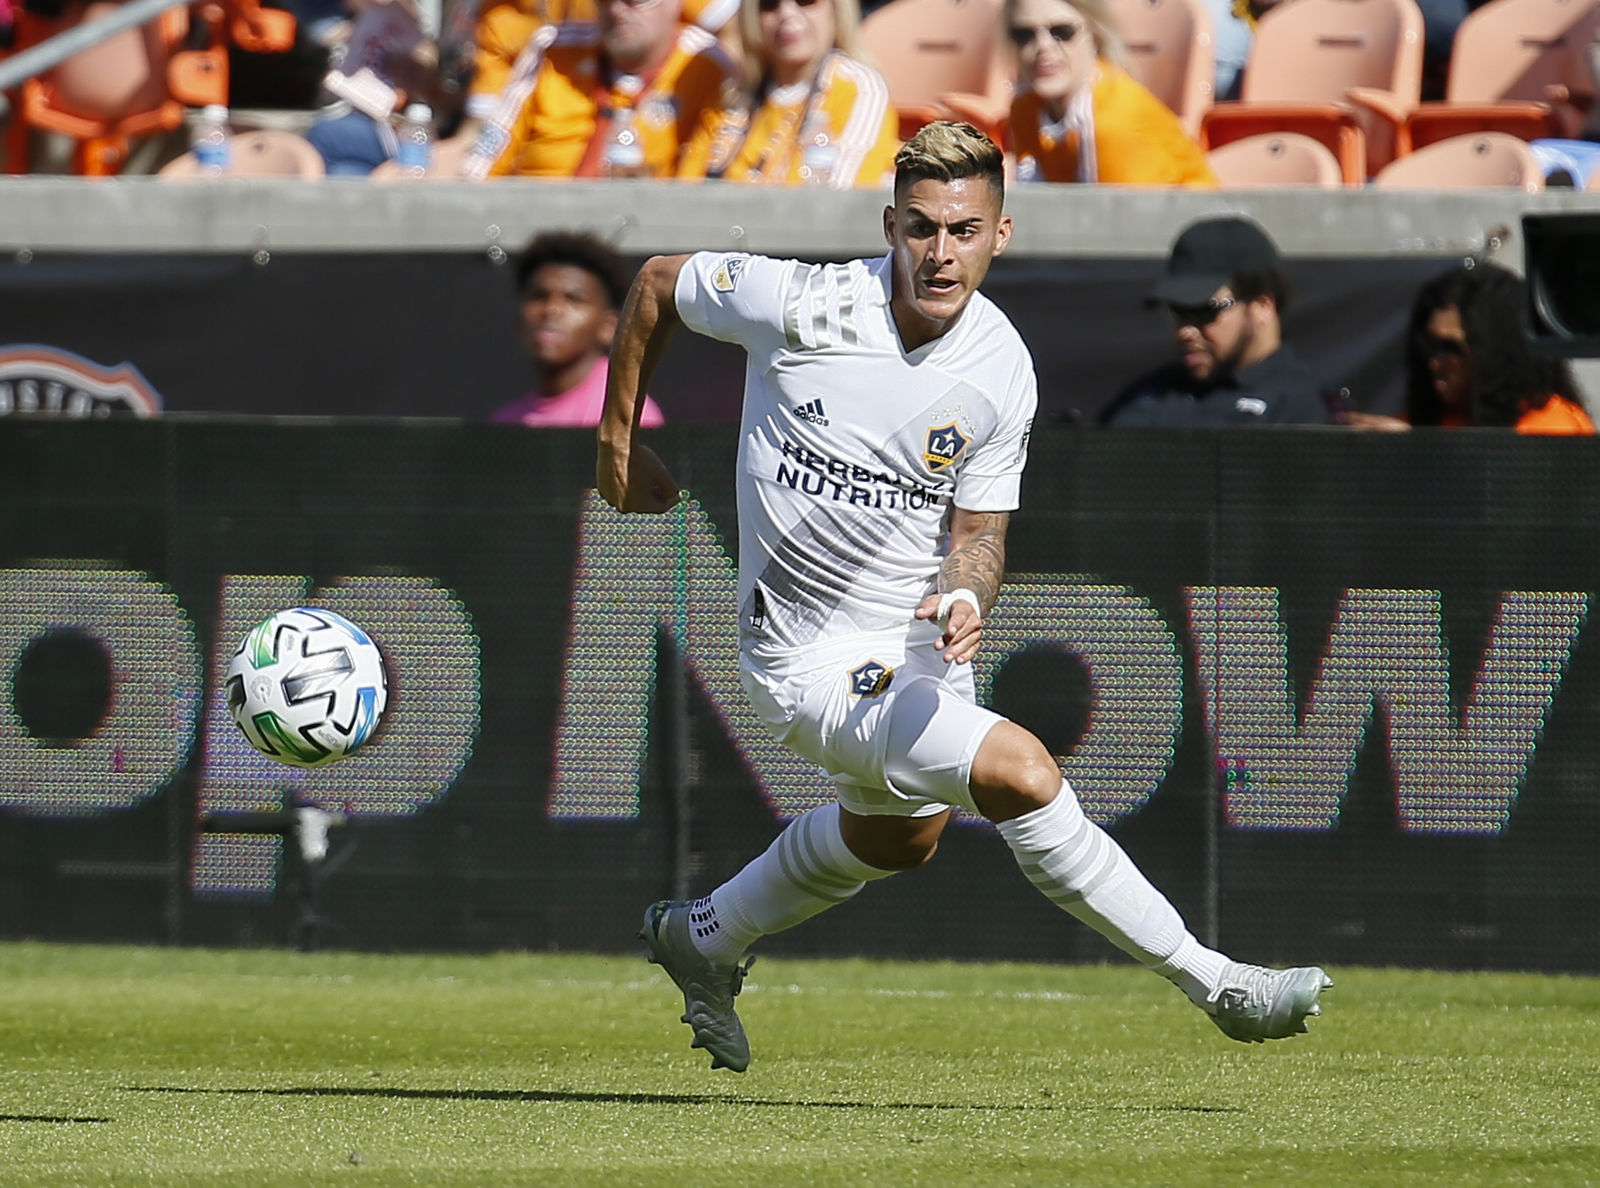 Cristian Pavon #10 of Los Angeles Galaxy runs down the ball before he scores against the Houston Dynamo during the first half at BBVA Stadium on February 29, 2020 in Houston, Texas. (Photo by Bob Levey/Getty Images)